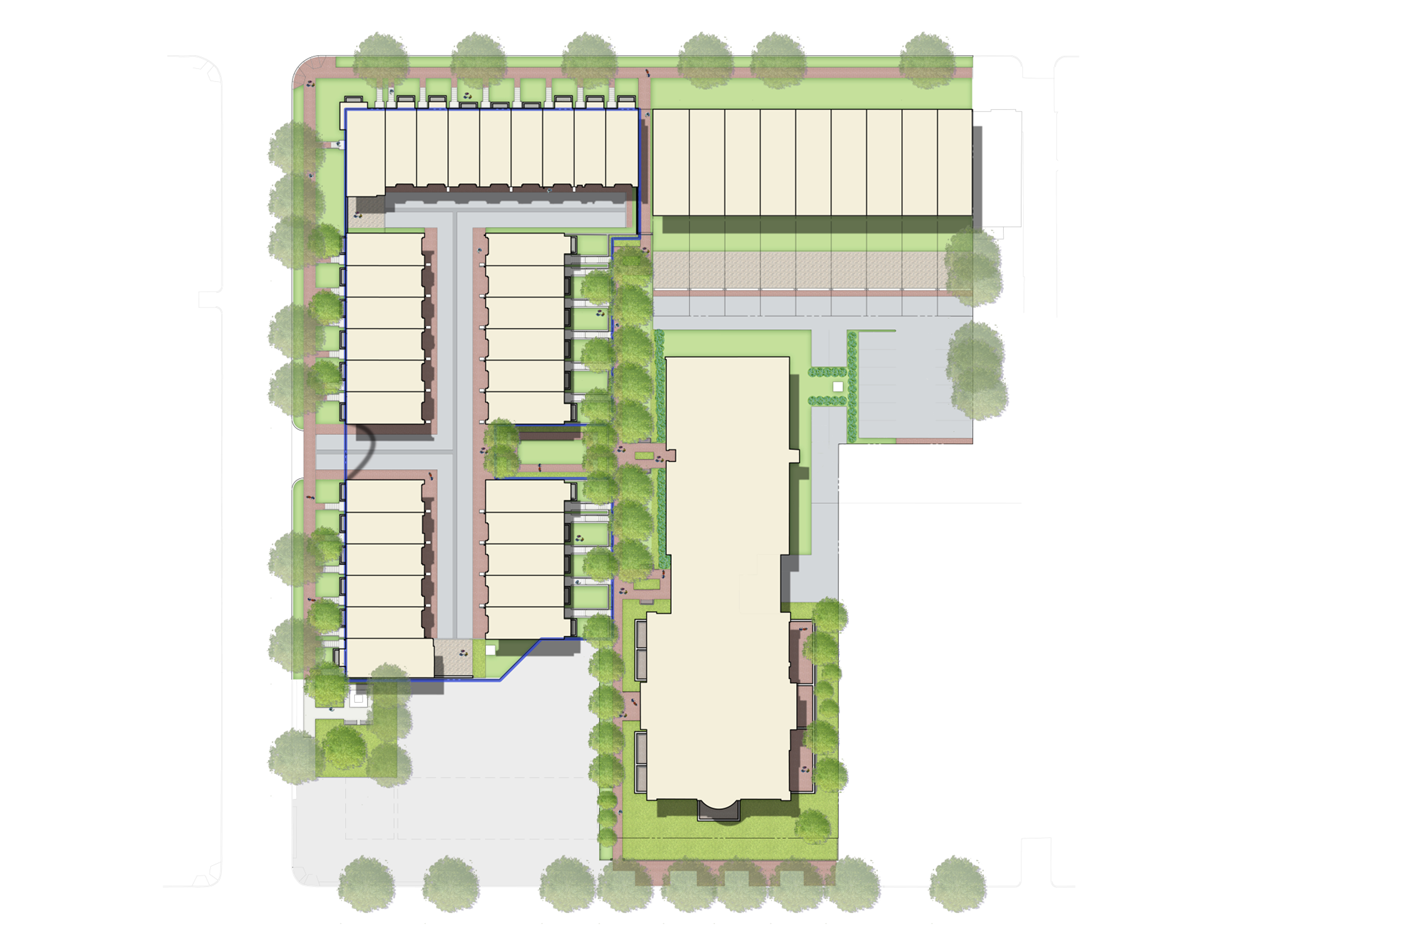 Proposed site plan for the Buchanan School redevelopment